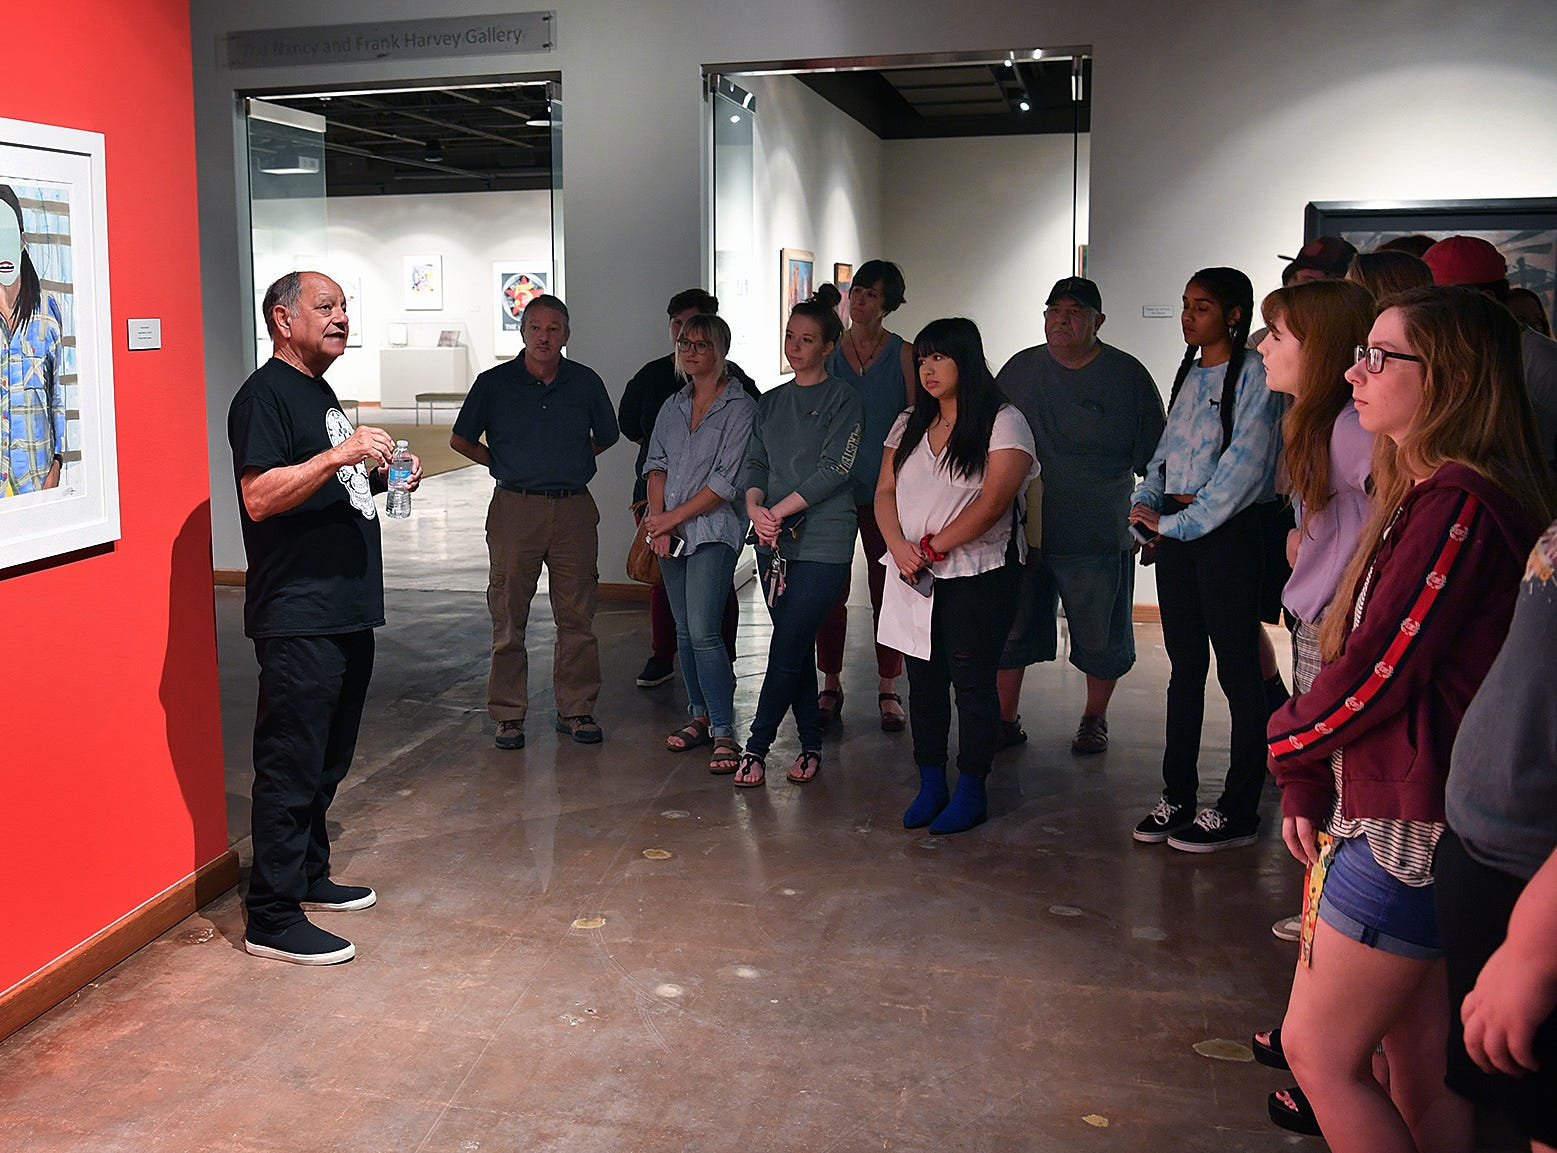 Midwestern State University art students listen as Cheech Marin talks about the exhibit of Chicano art from his collection at the Wichita Falls Museum of Art at MSU Wednesday morning.